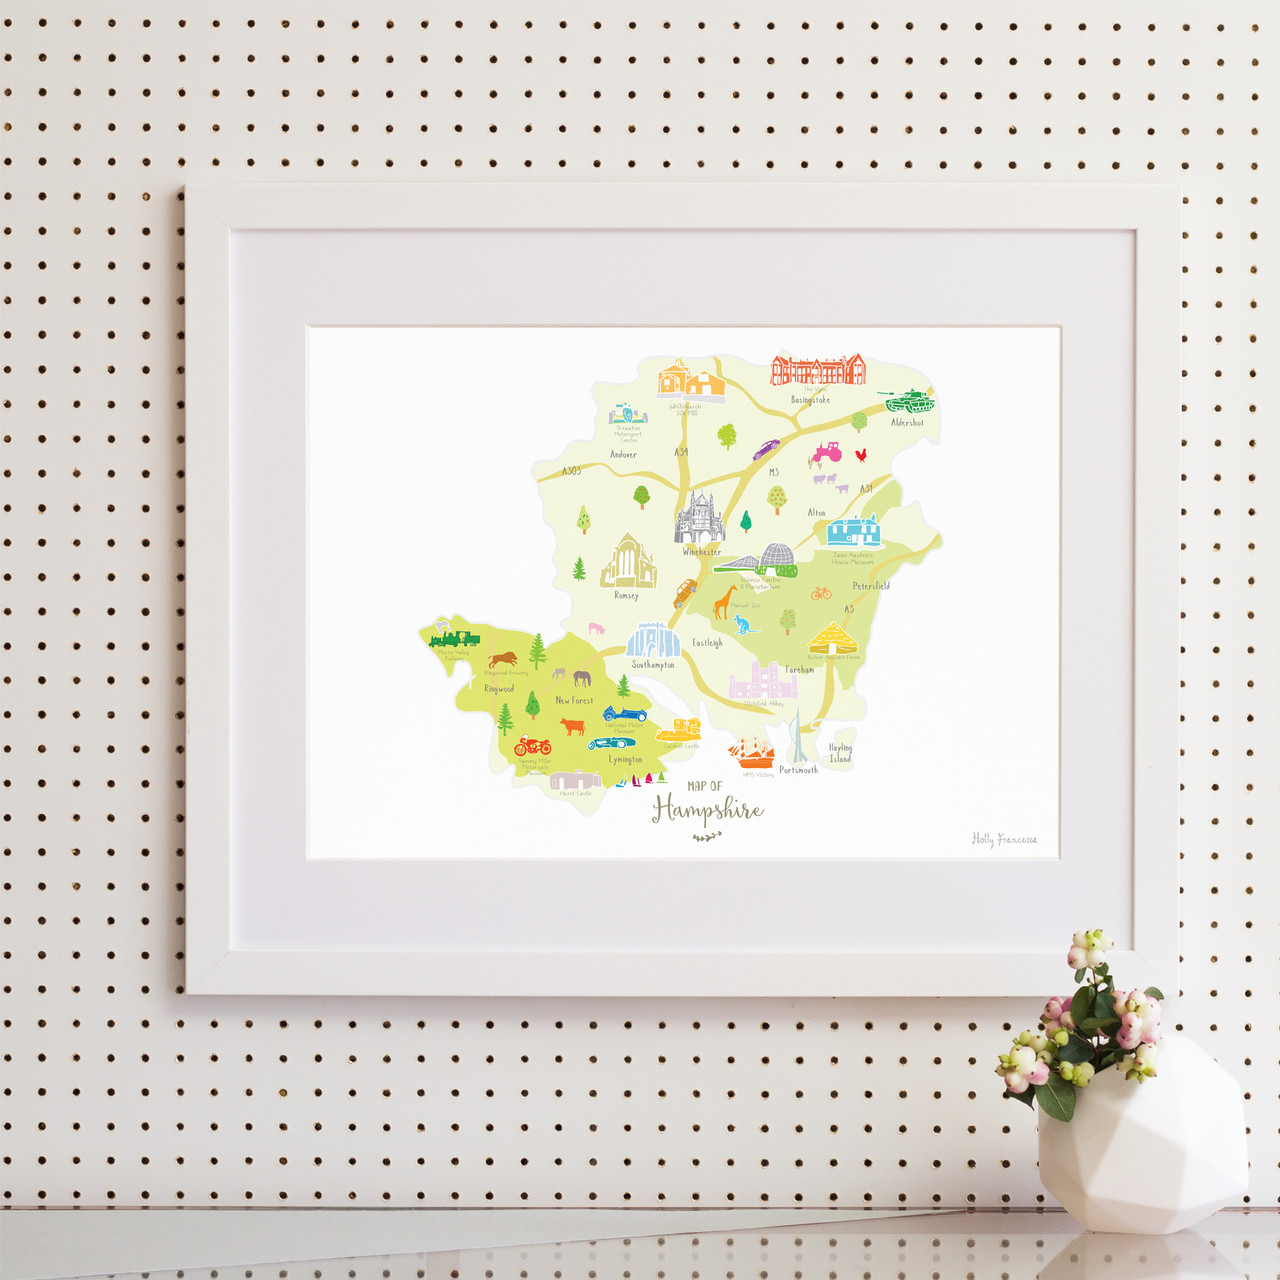 Map Of England 950.Illustrated Hand Drawn Map Of Hampshire By Uk Artist Holly Francesca